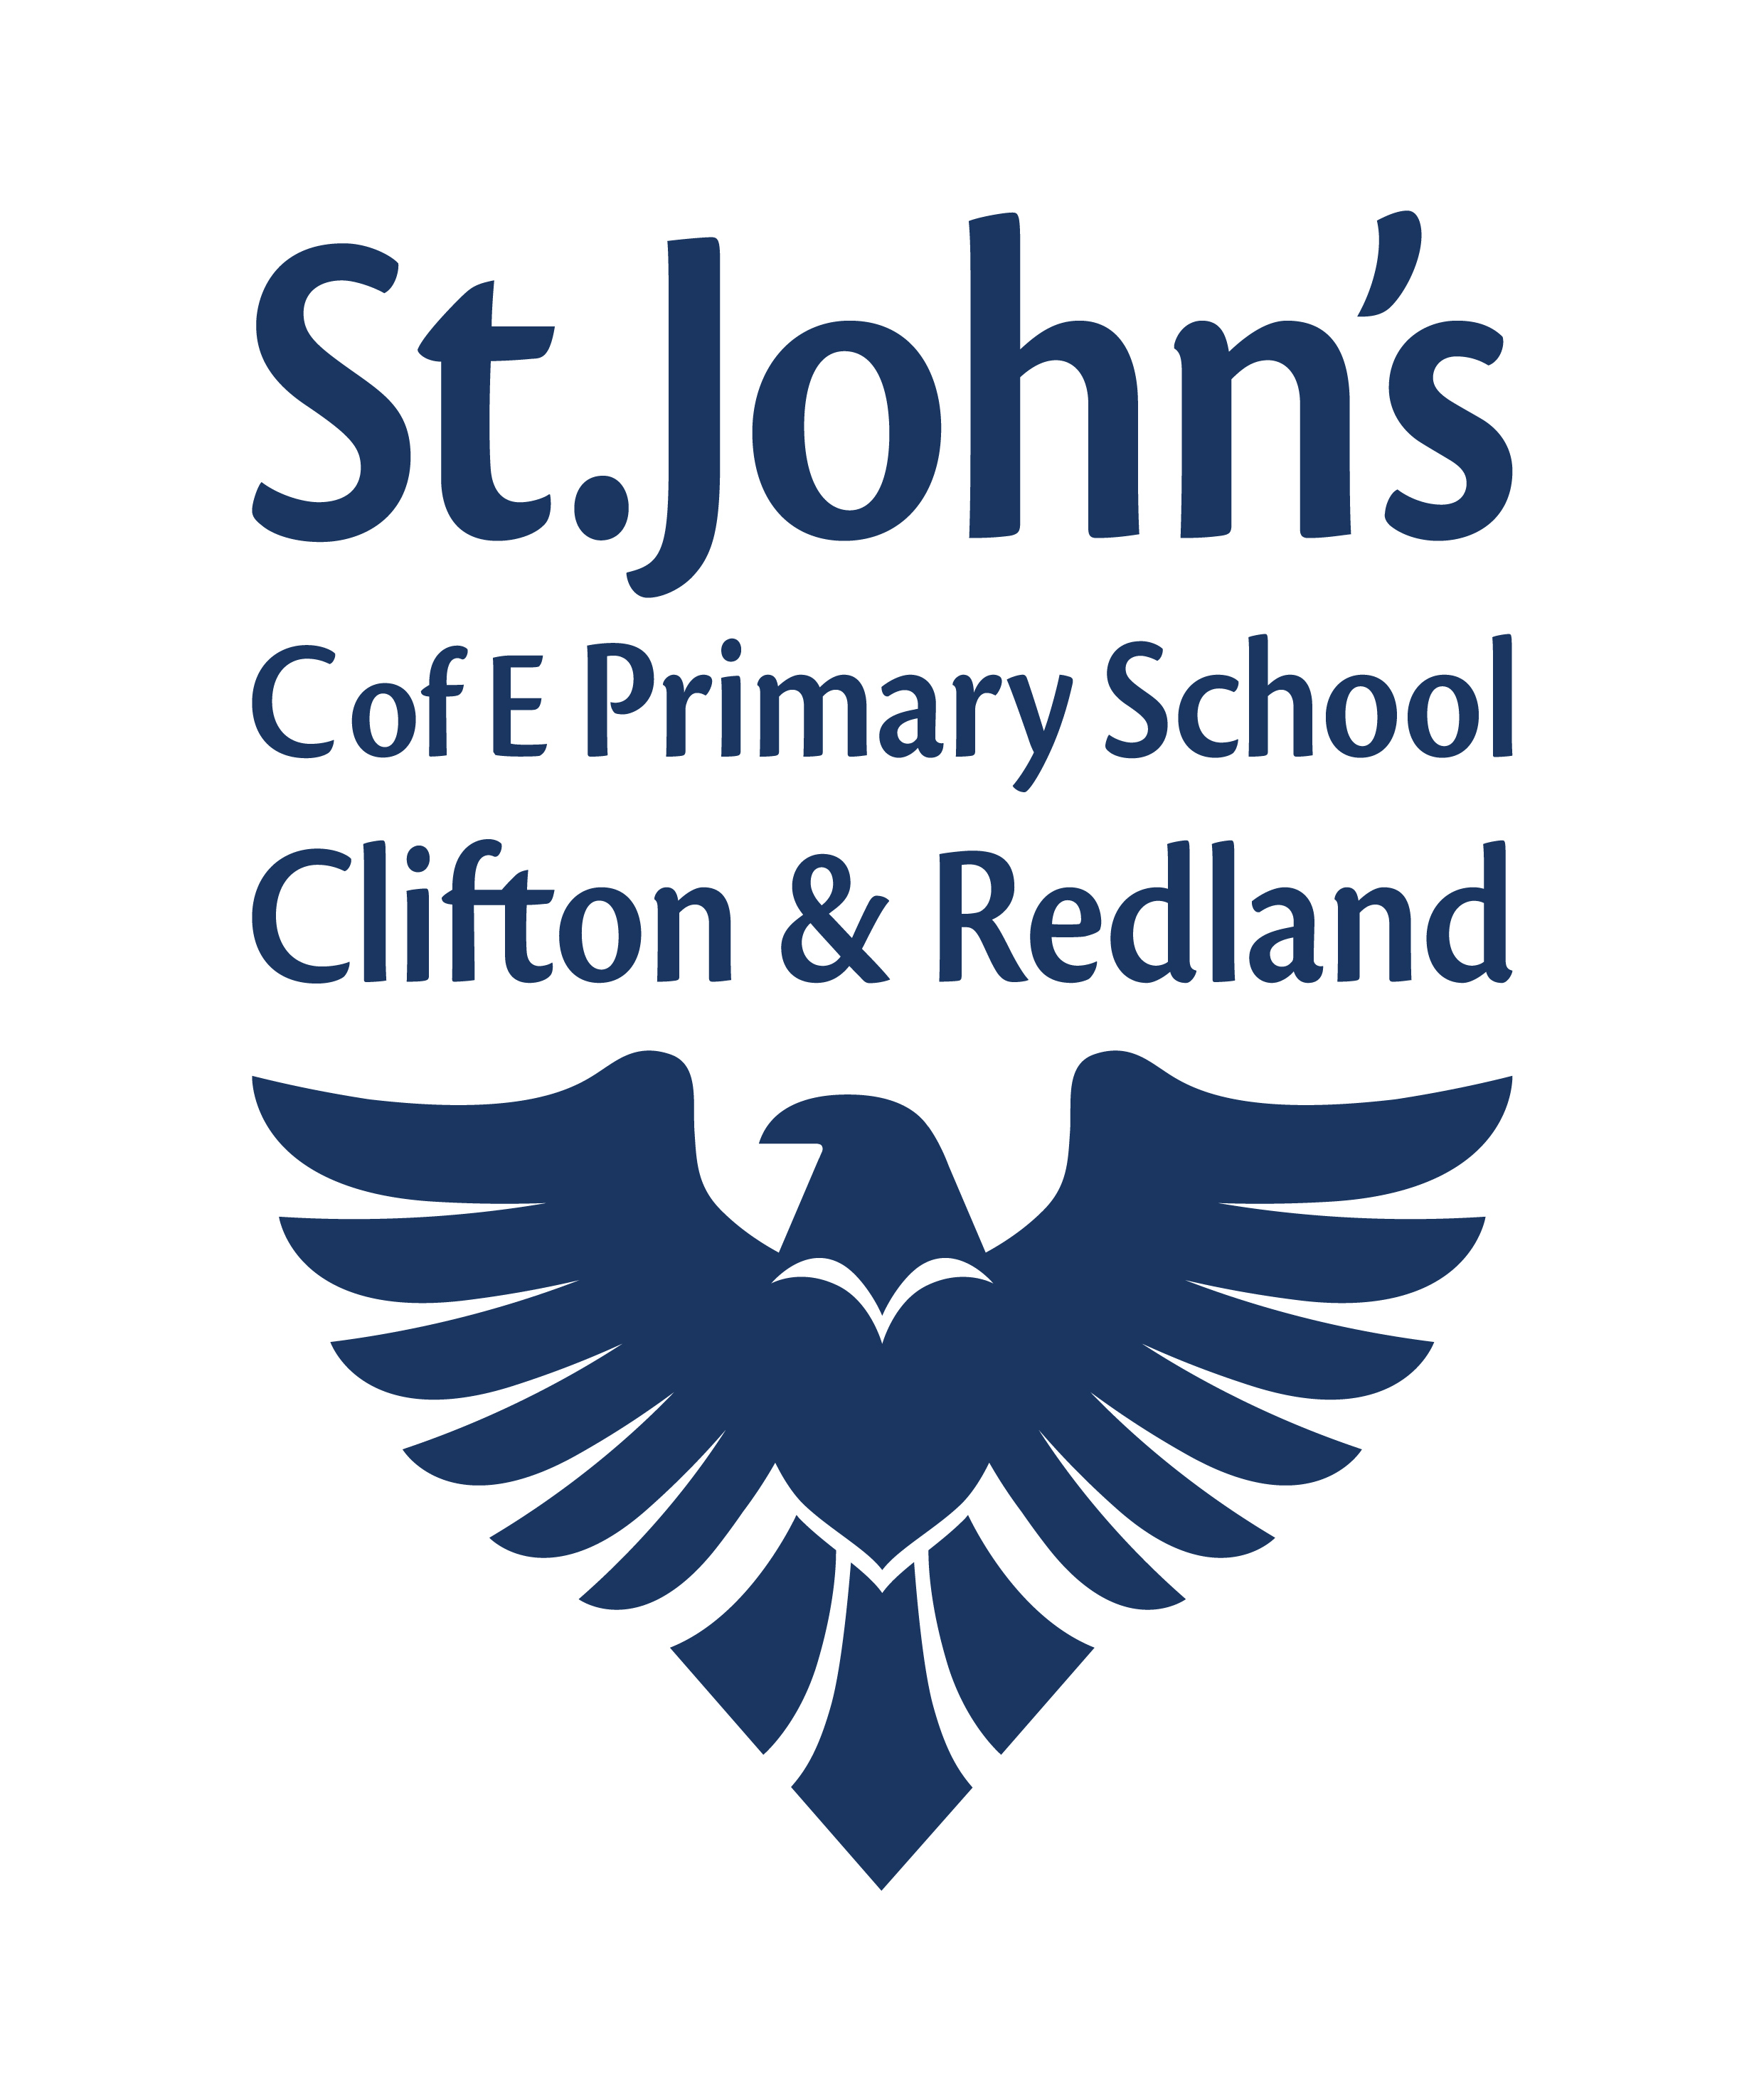 St Johns Church of England Primary School, Clifton